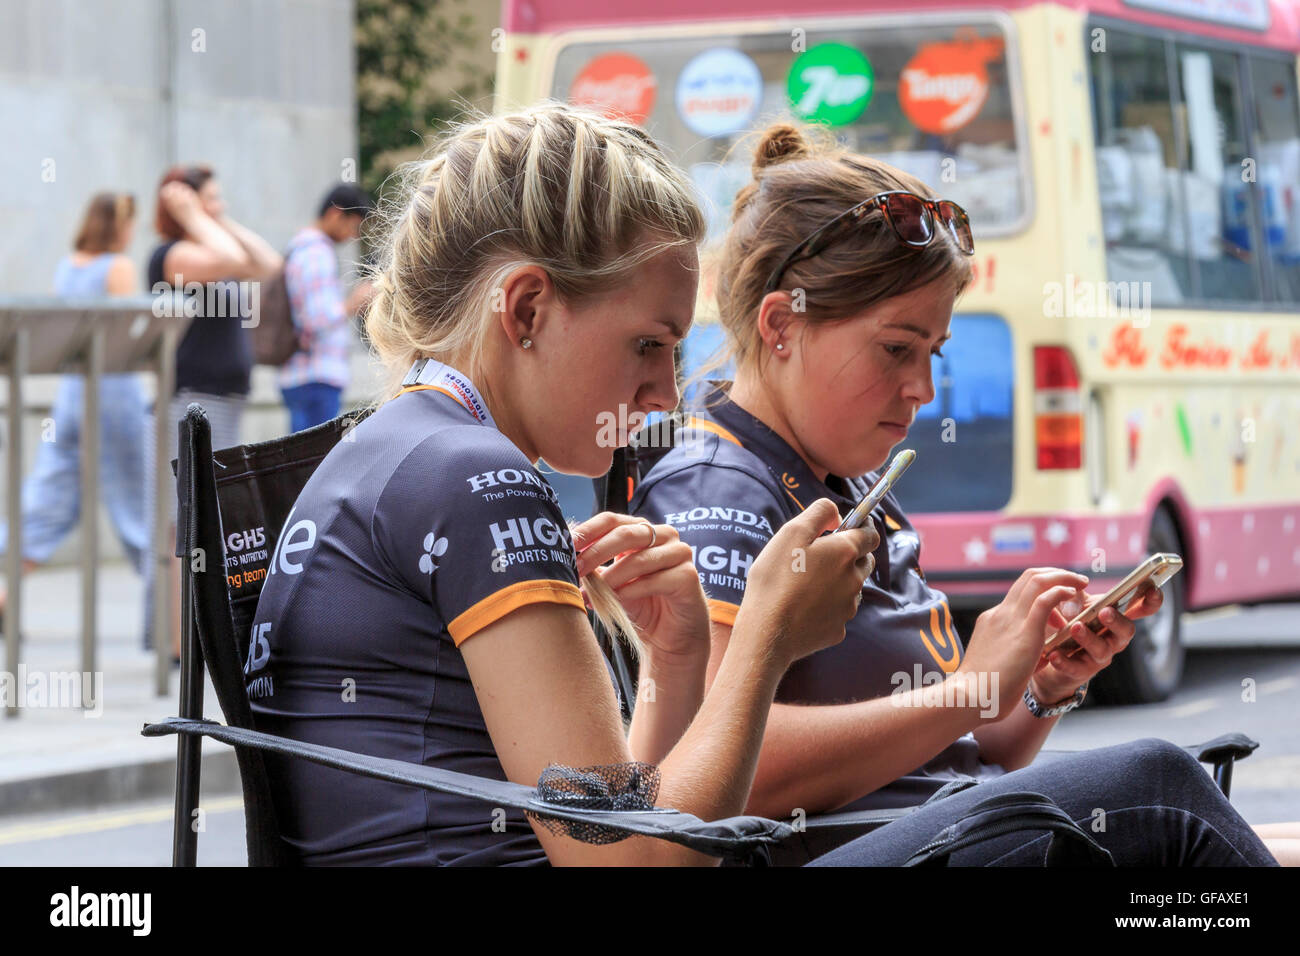 London, UK, 30 July 2016. Prudential RideLondon Classique. Amy Pieters (left) and Chloe Hosking (right) of Wiggle Stock Photo